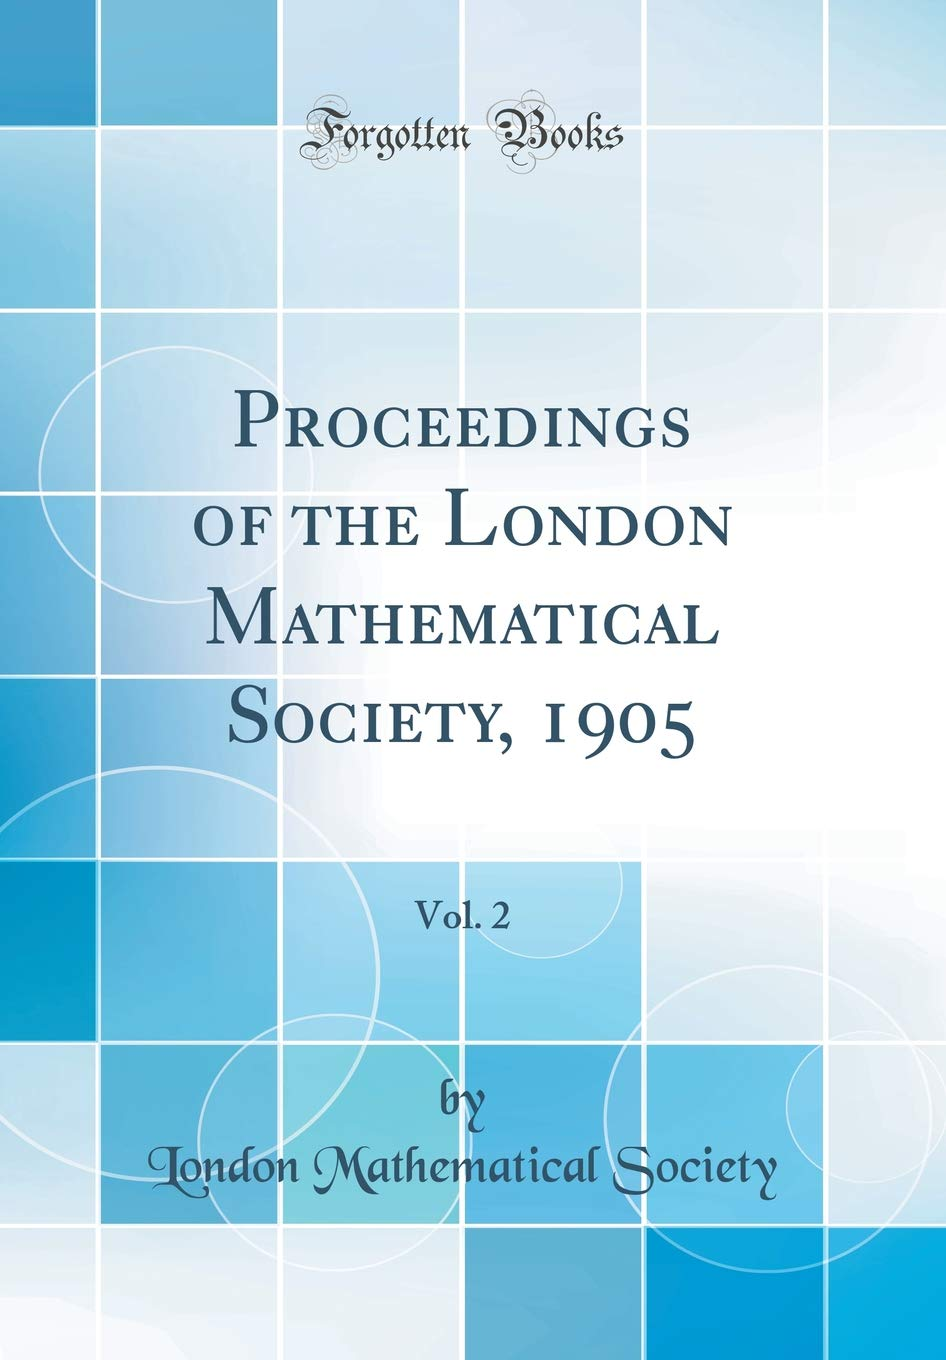 Proceedings of the London Mathematical Society, 1905, Vol  2